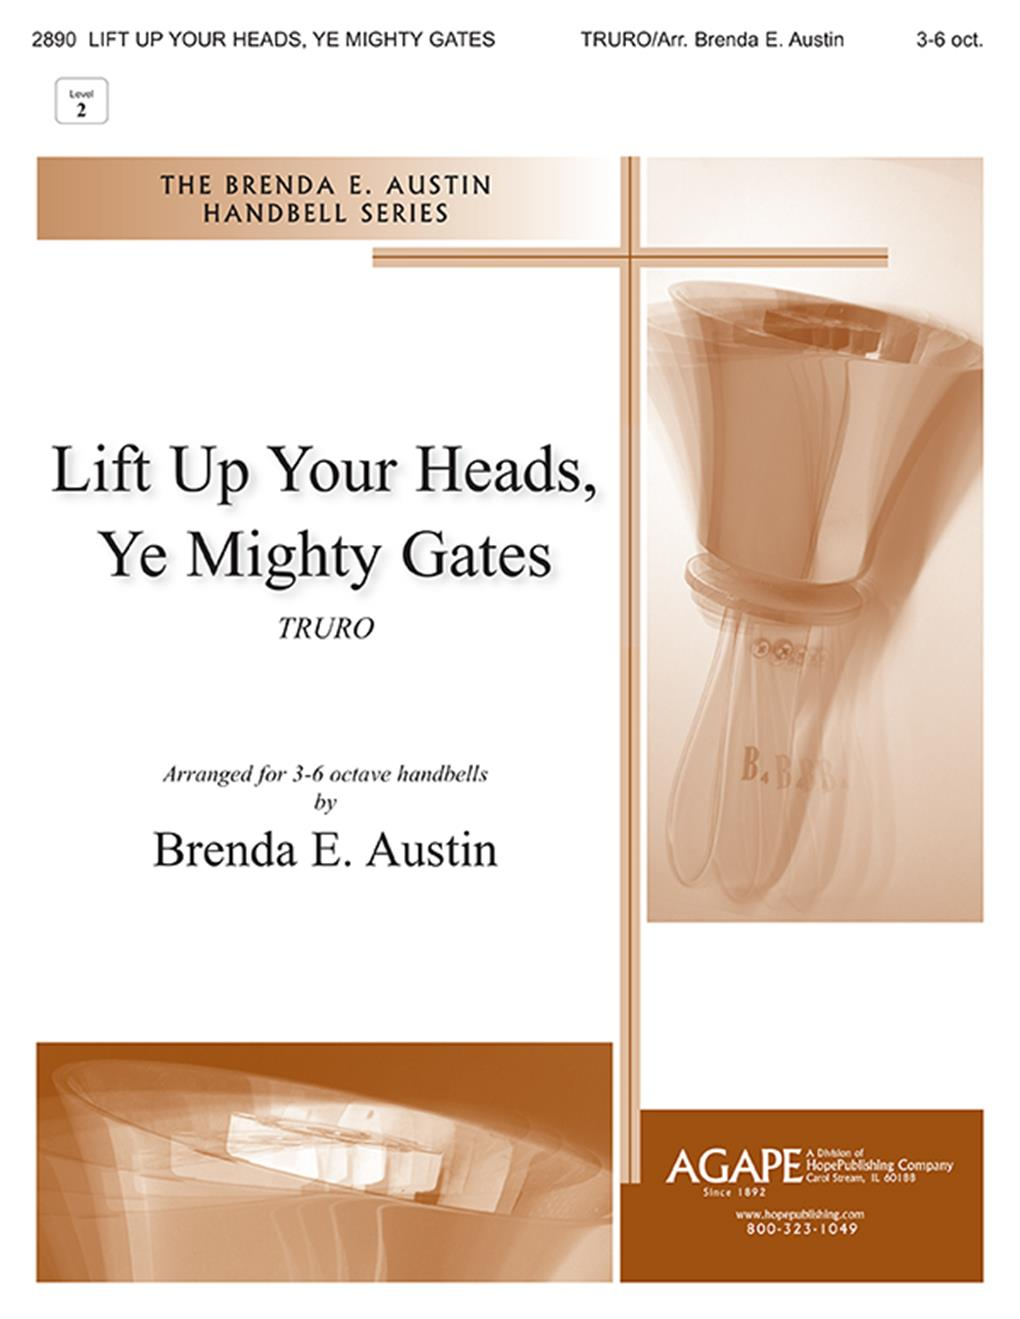 Lift Up Your Heads Ye Mighty Gates - 3-6 Oct. Cover Image